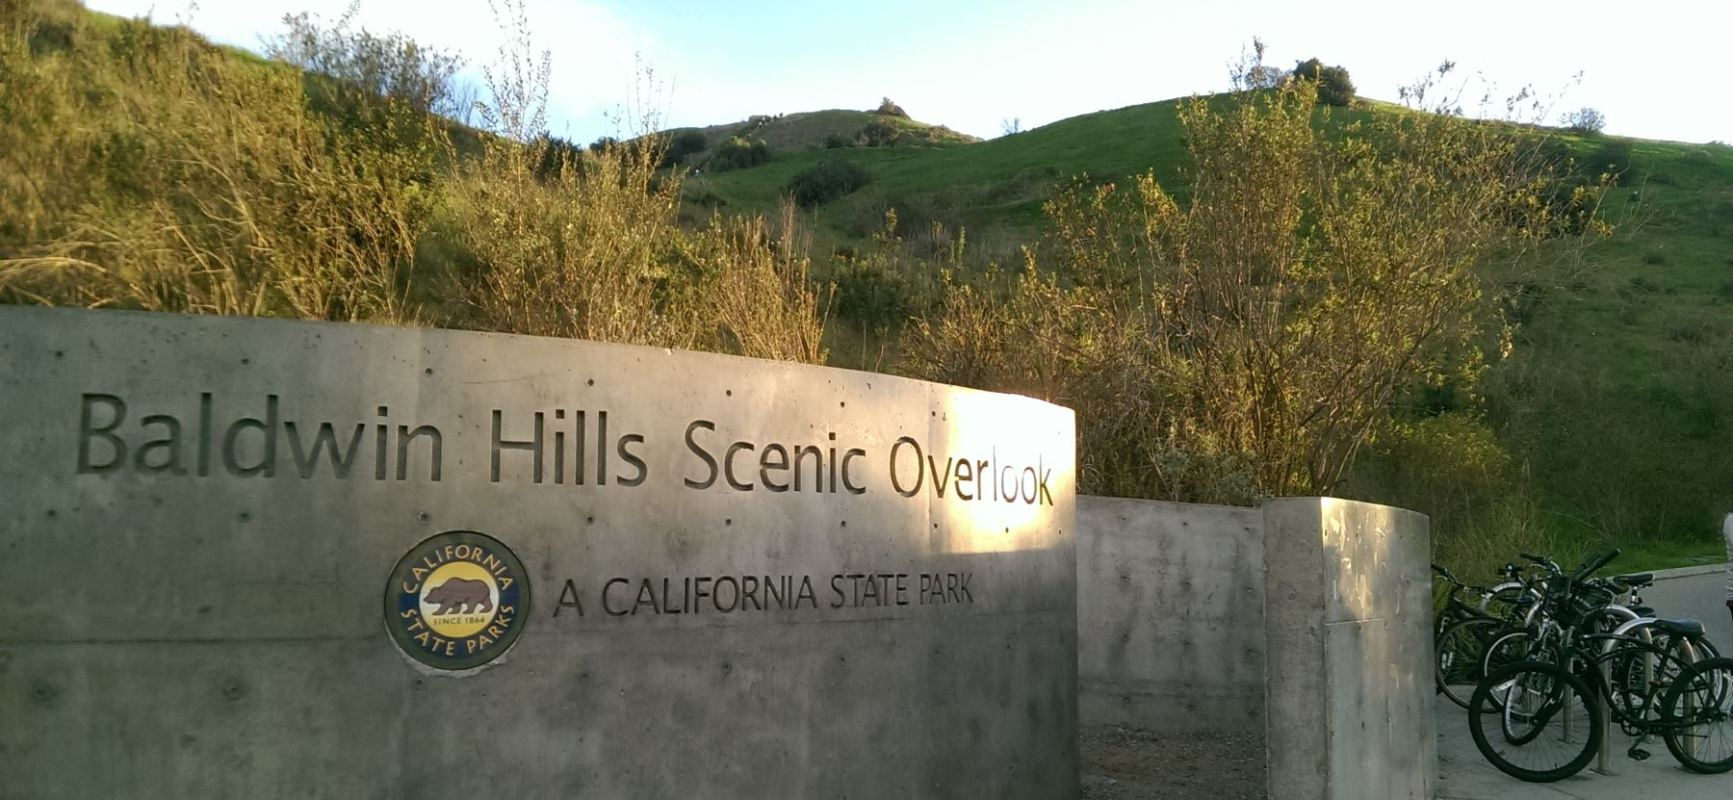 Hike the Baldwin Hills Scenic Overlook for an Awesome View near Downtown Culver City